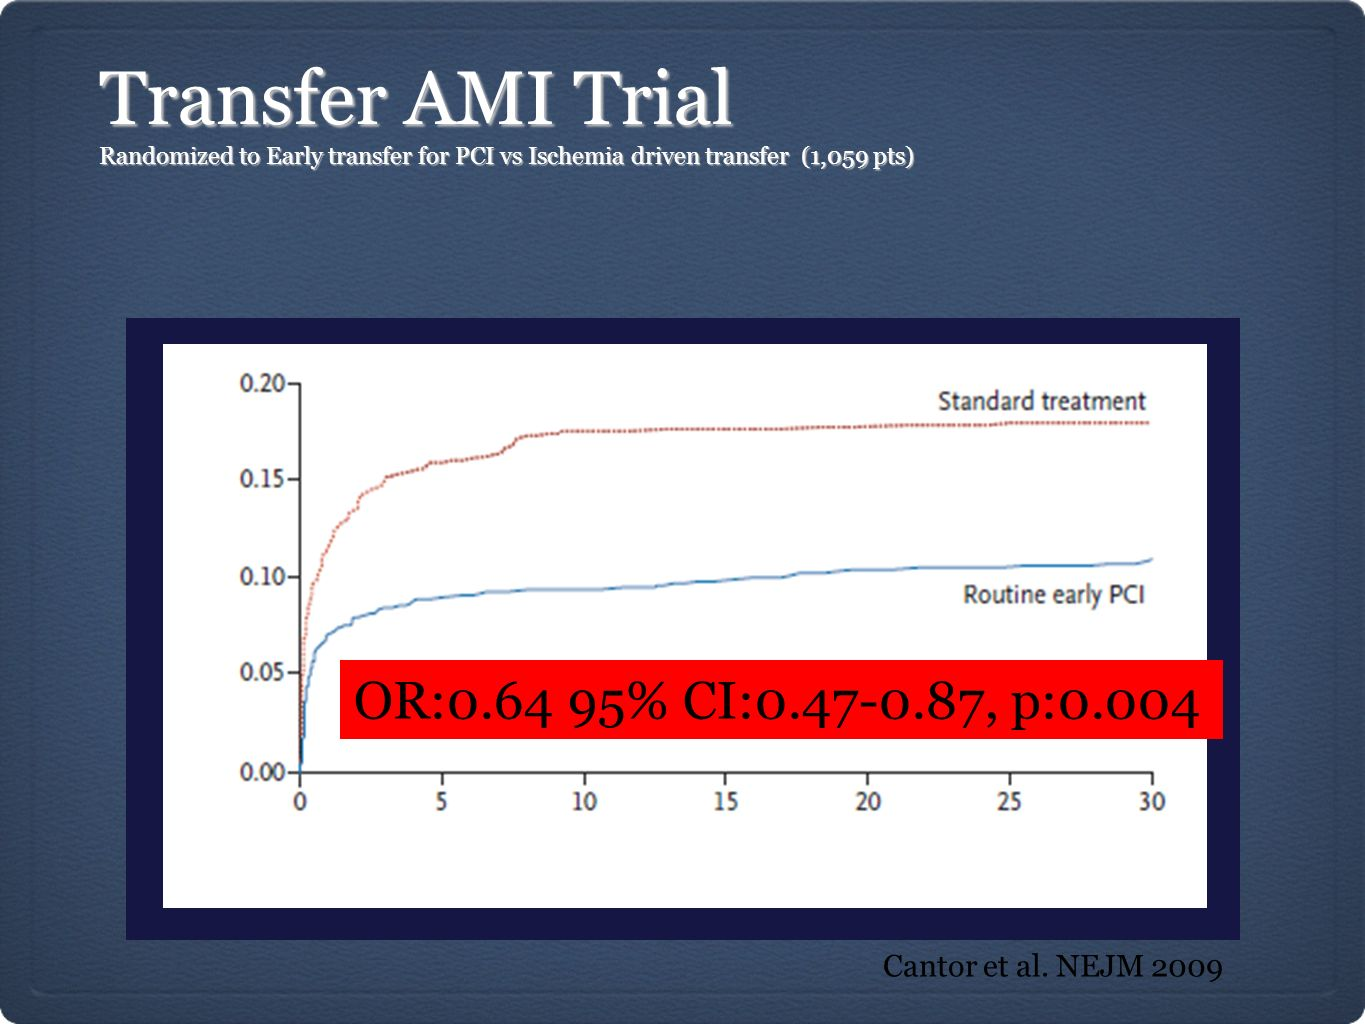 Transfer AMI Trial OR:0.64 95% CI:0.47-0.87, p:0.004